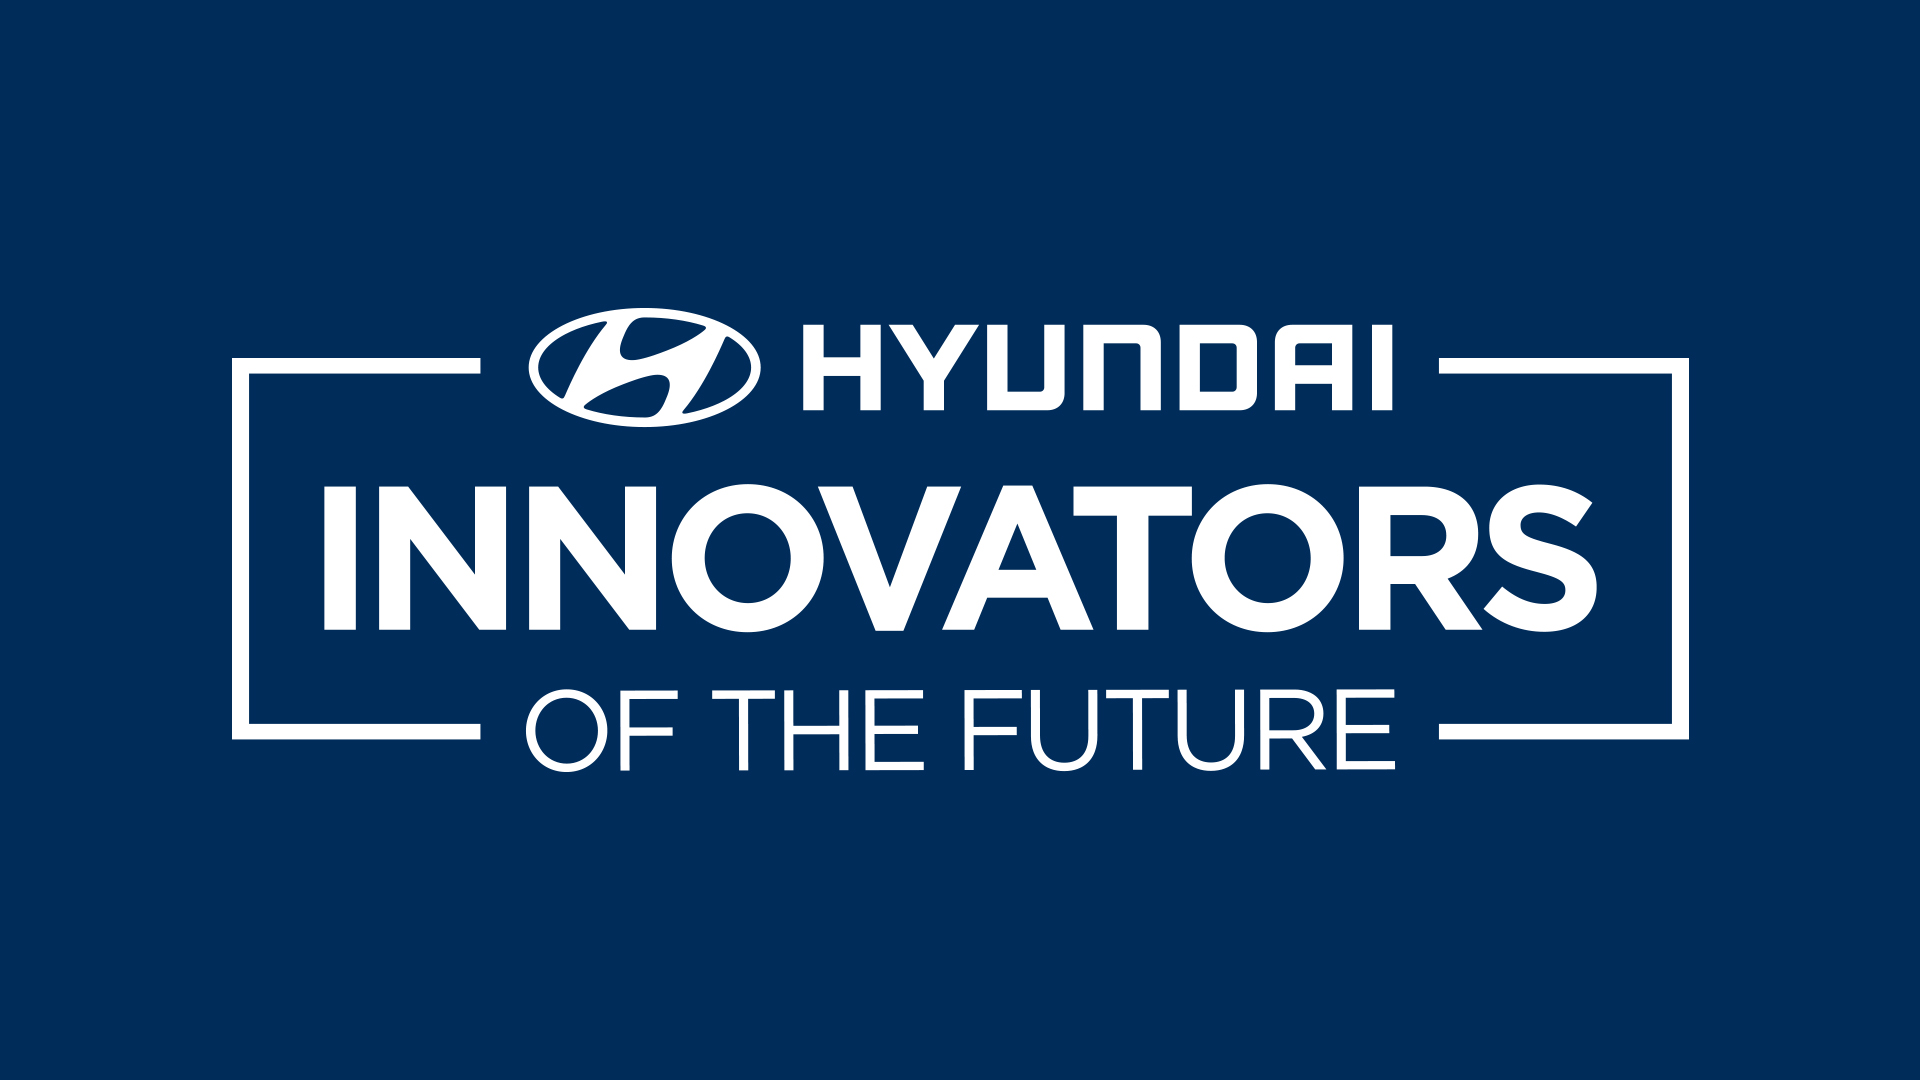 Logo for Hyundai Innovators of the Future competition